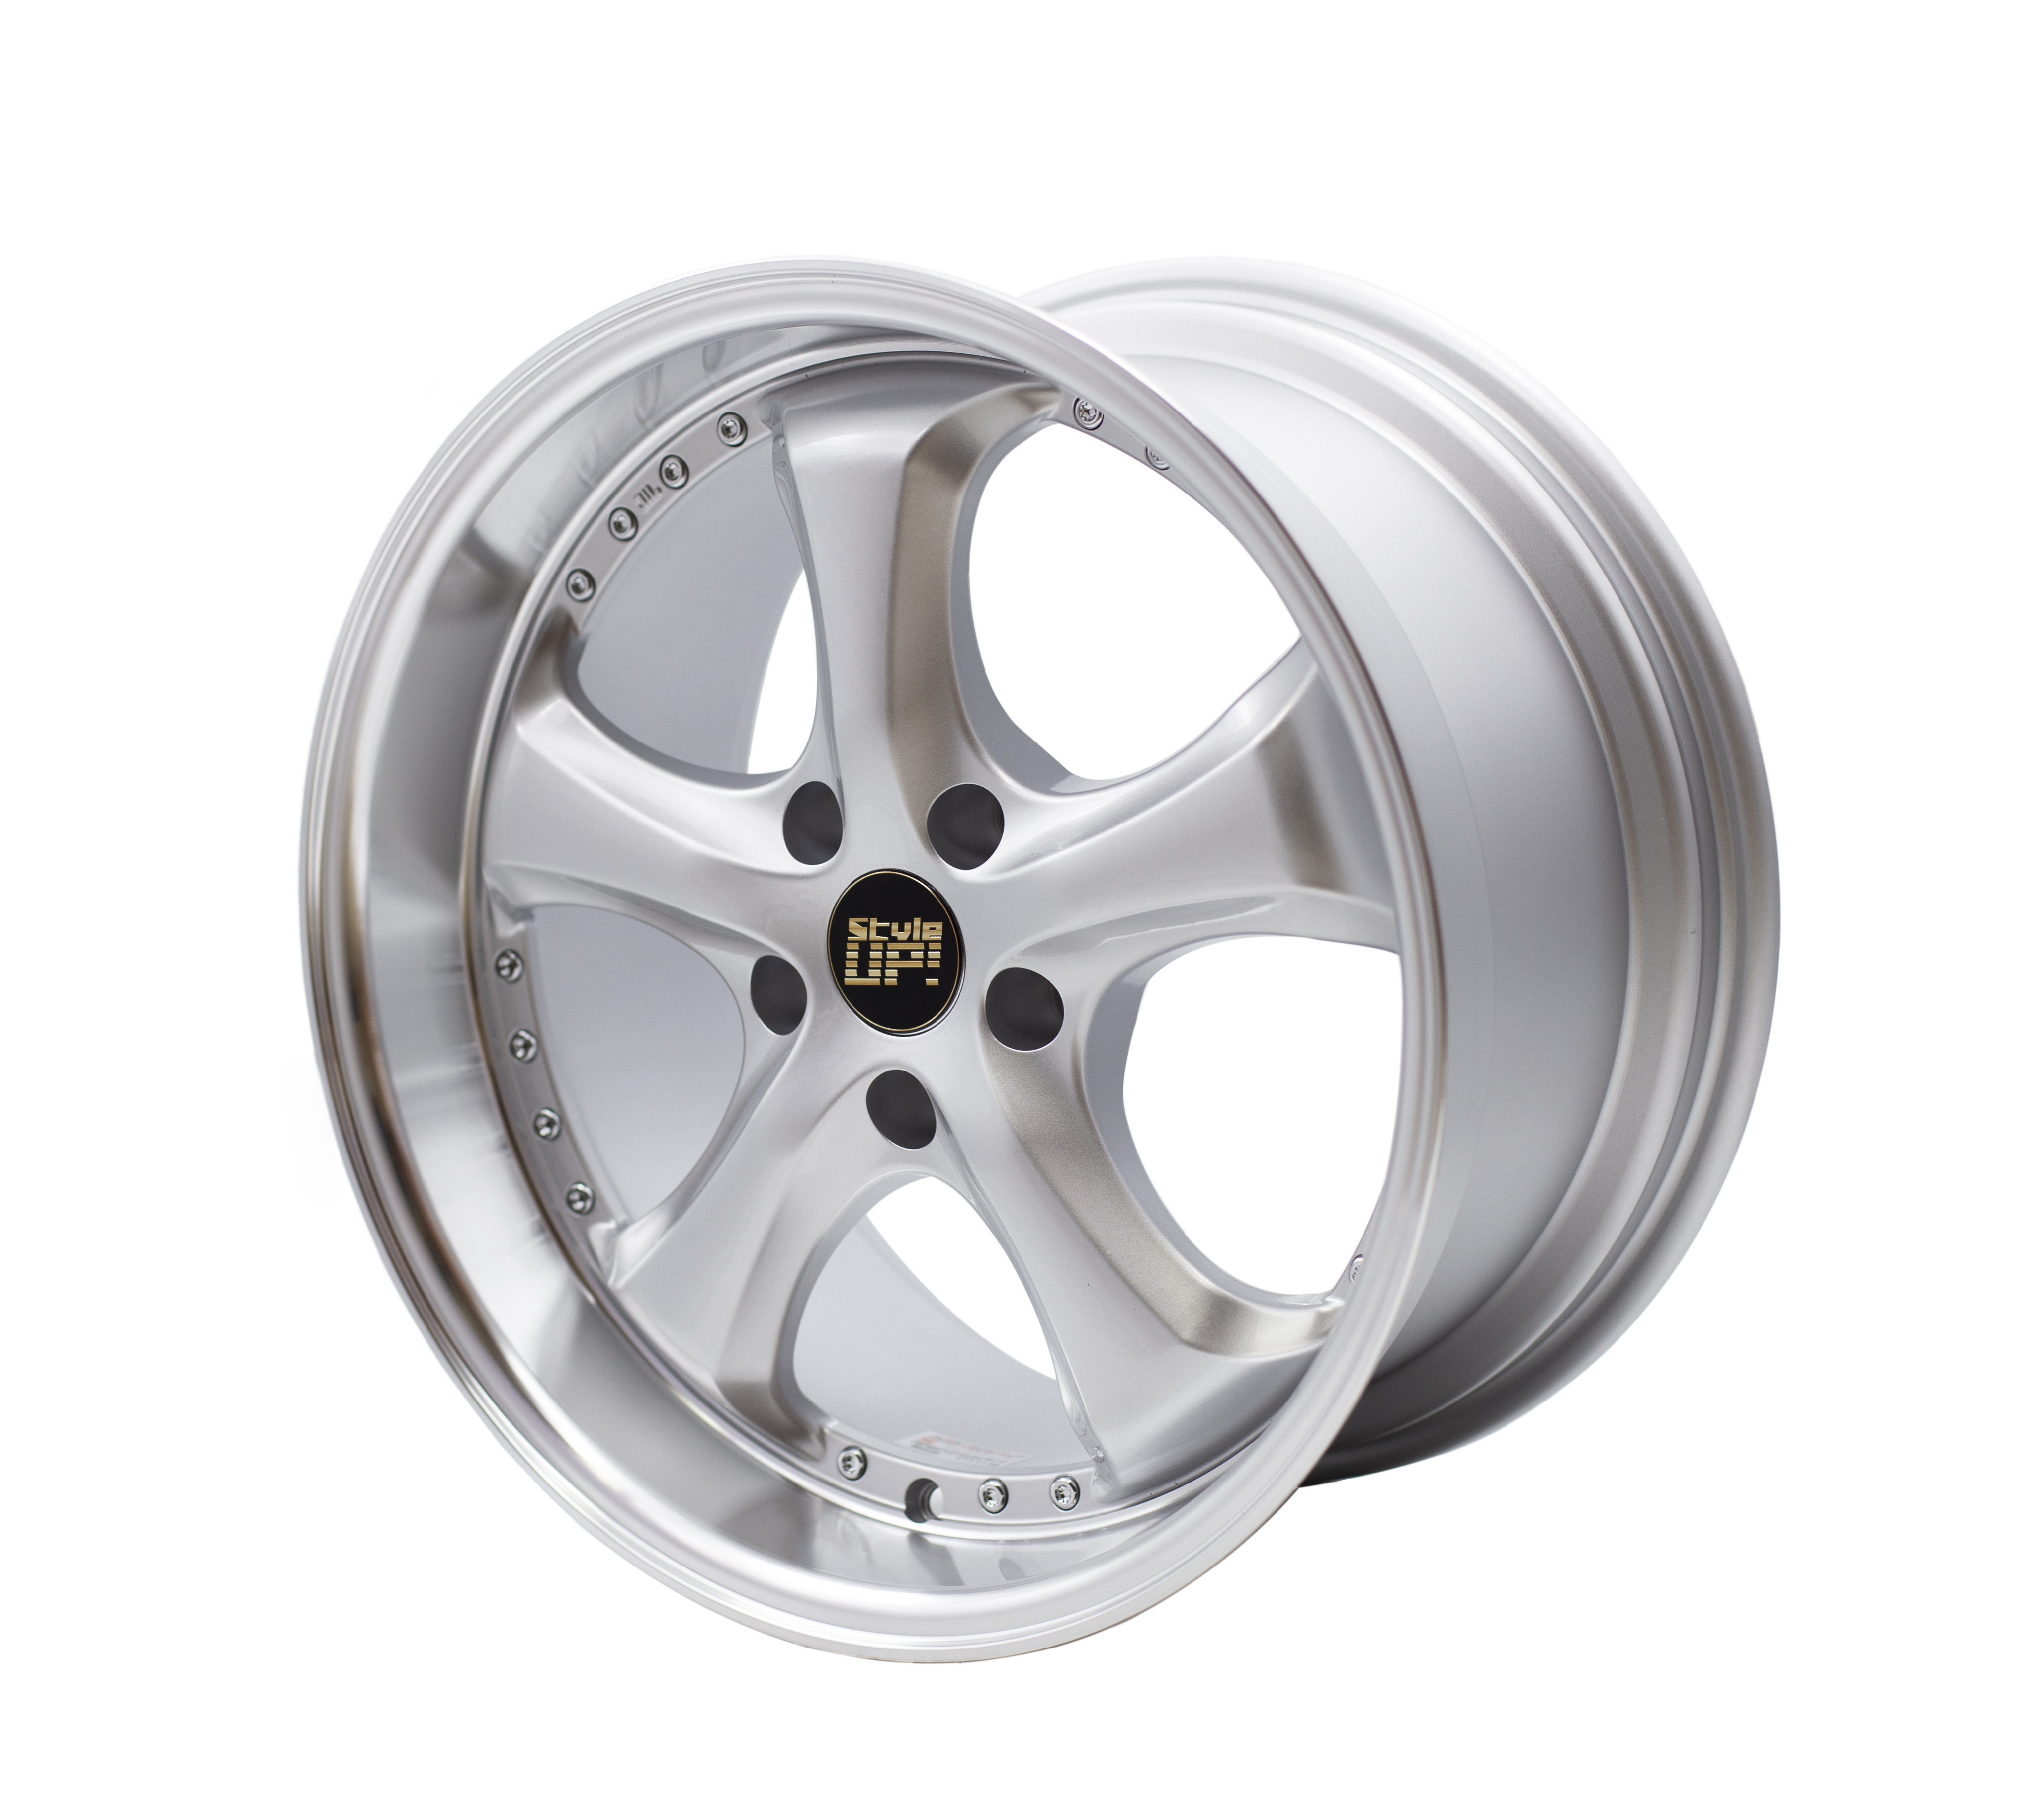 Manji 18x9.5+12 Custom Bolt Pattern